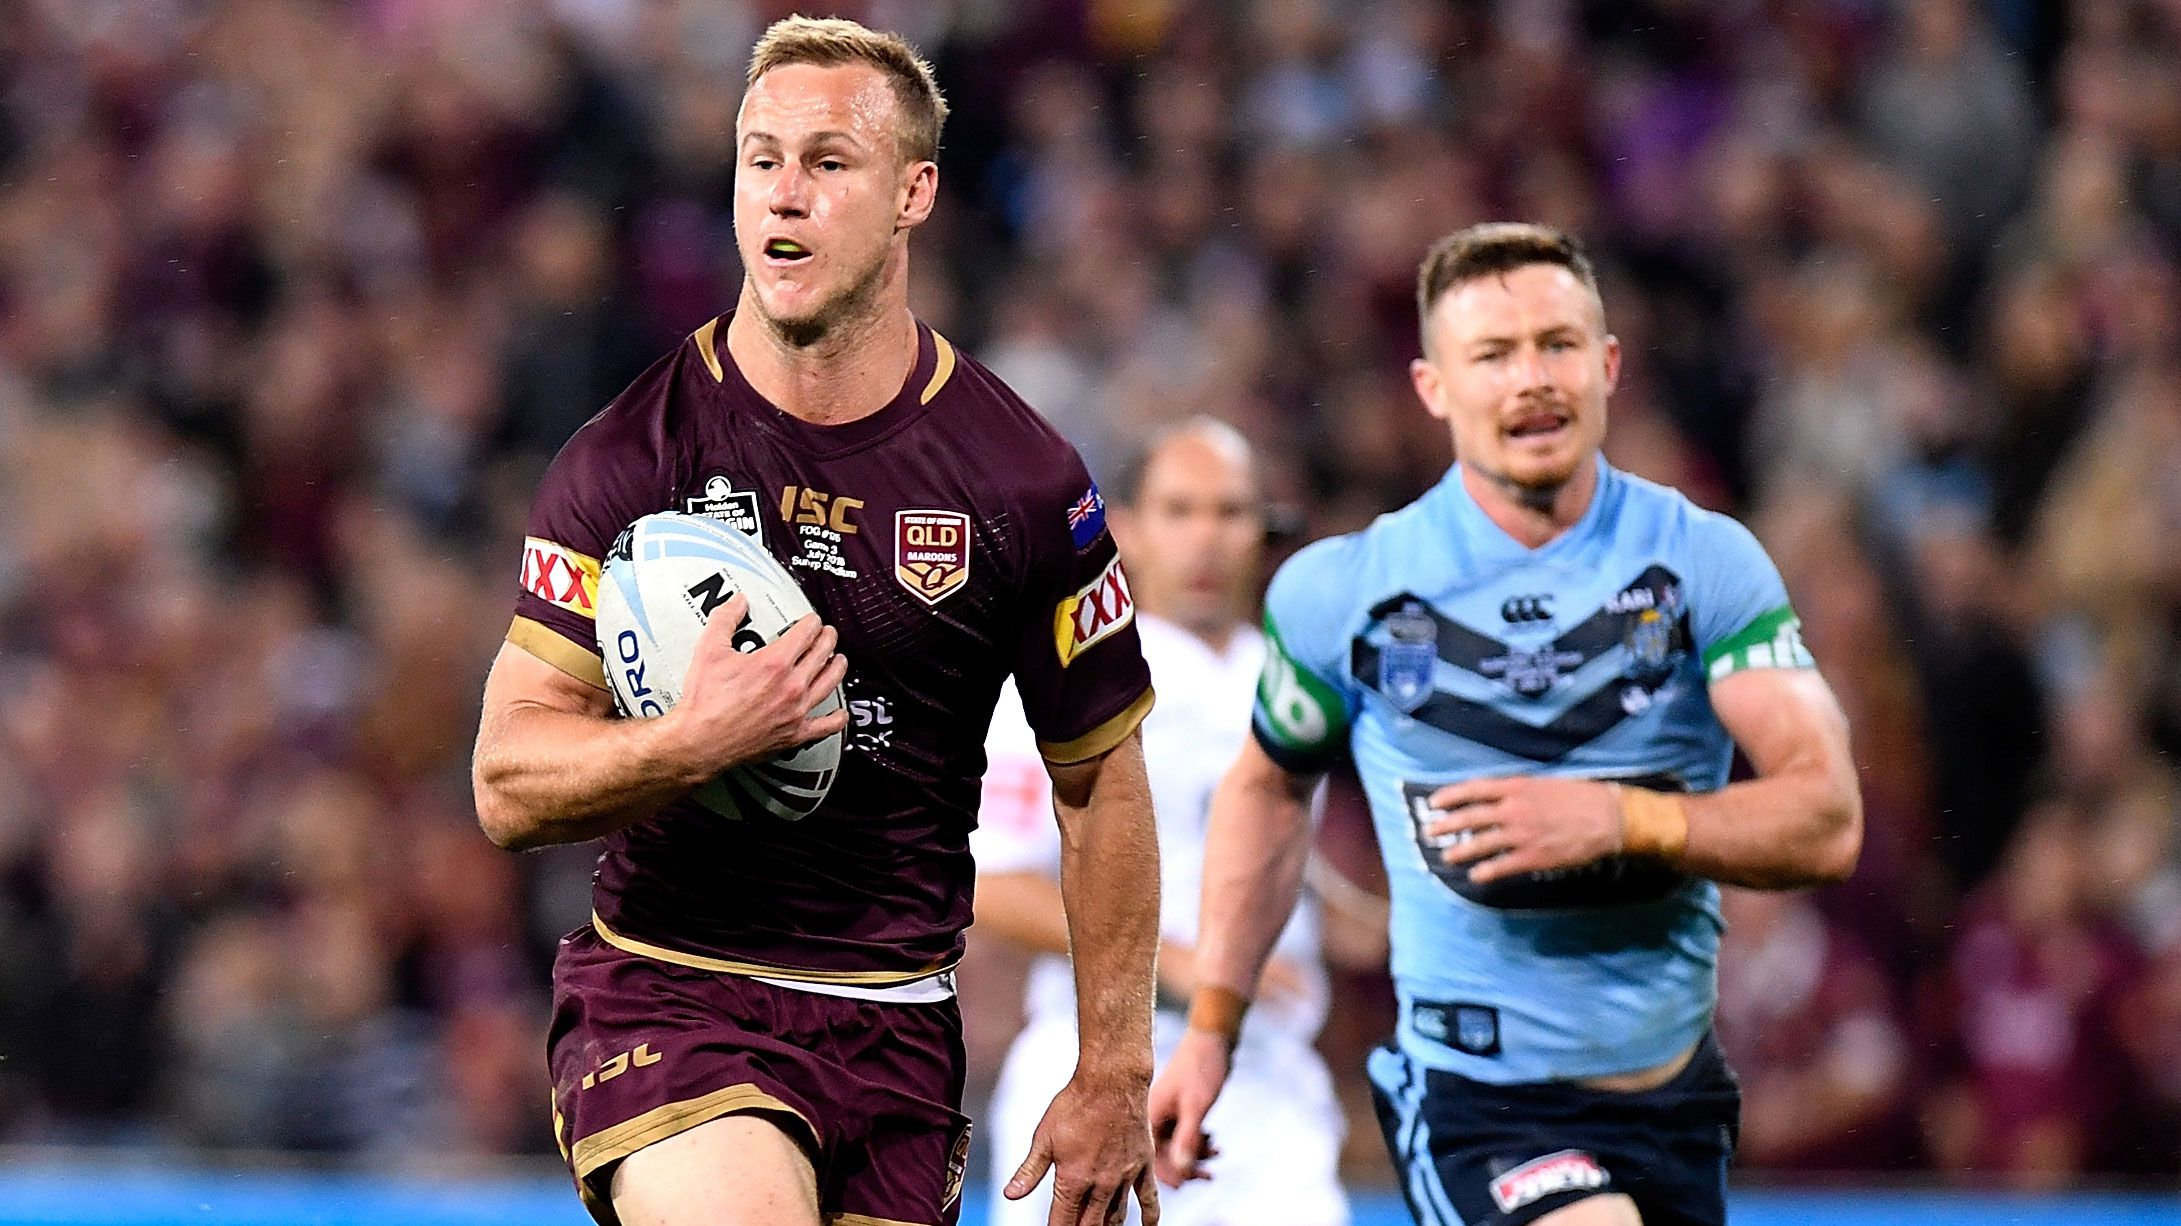 State of Origin 2019 Ultimate Guide: Everything you need to know